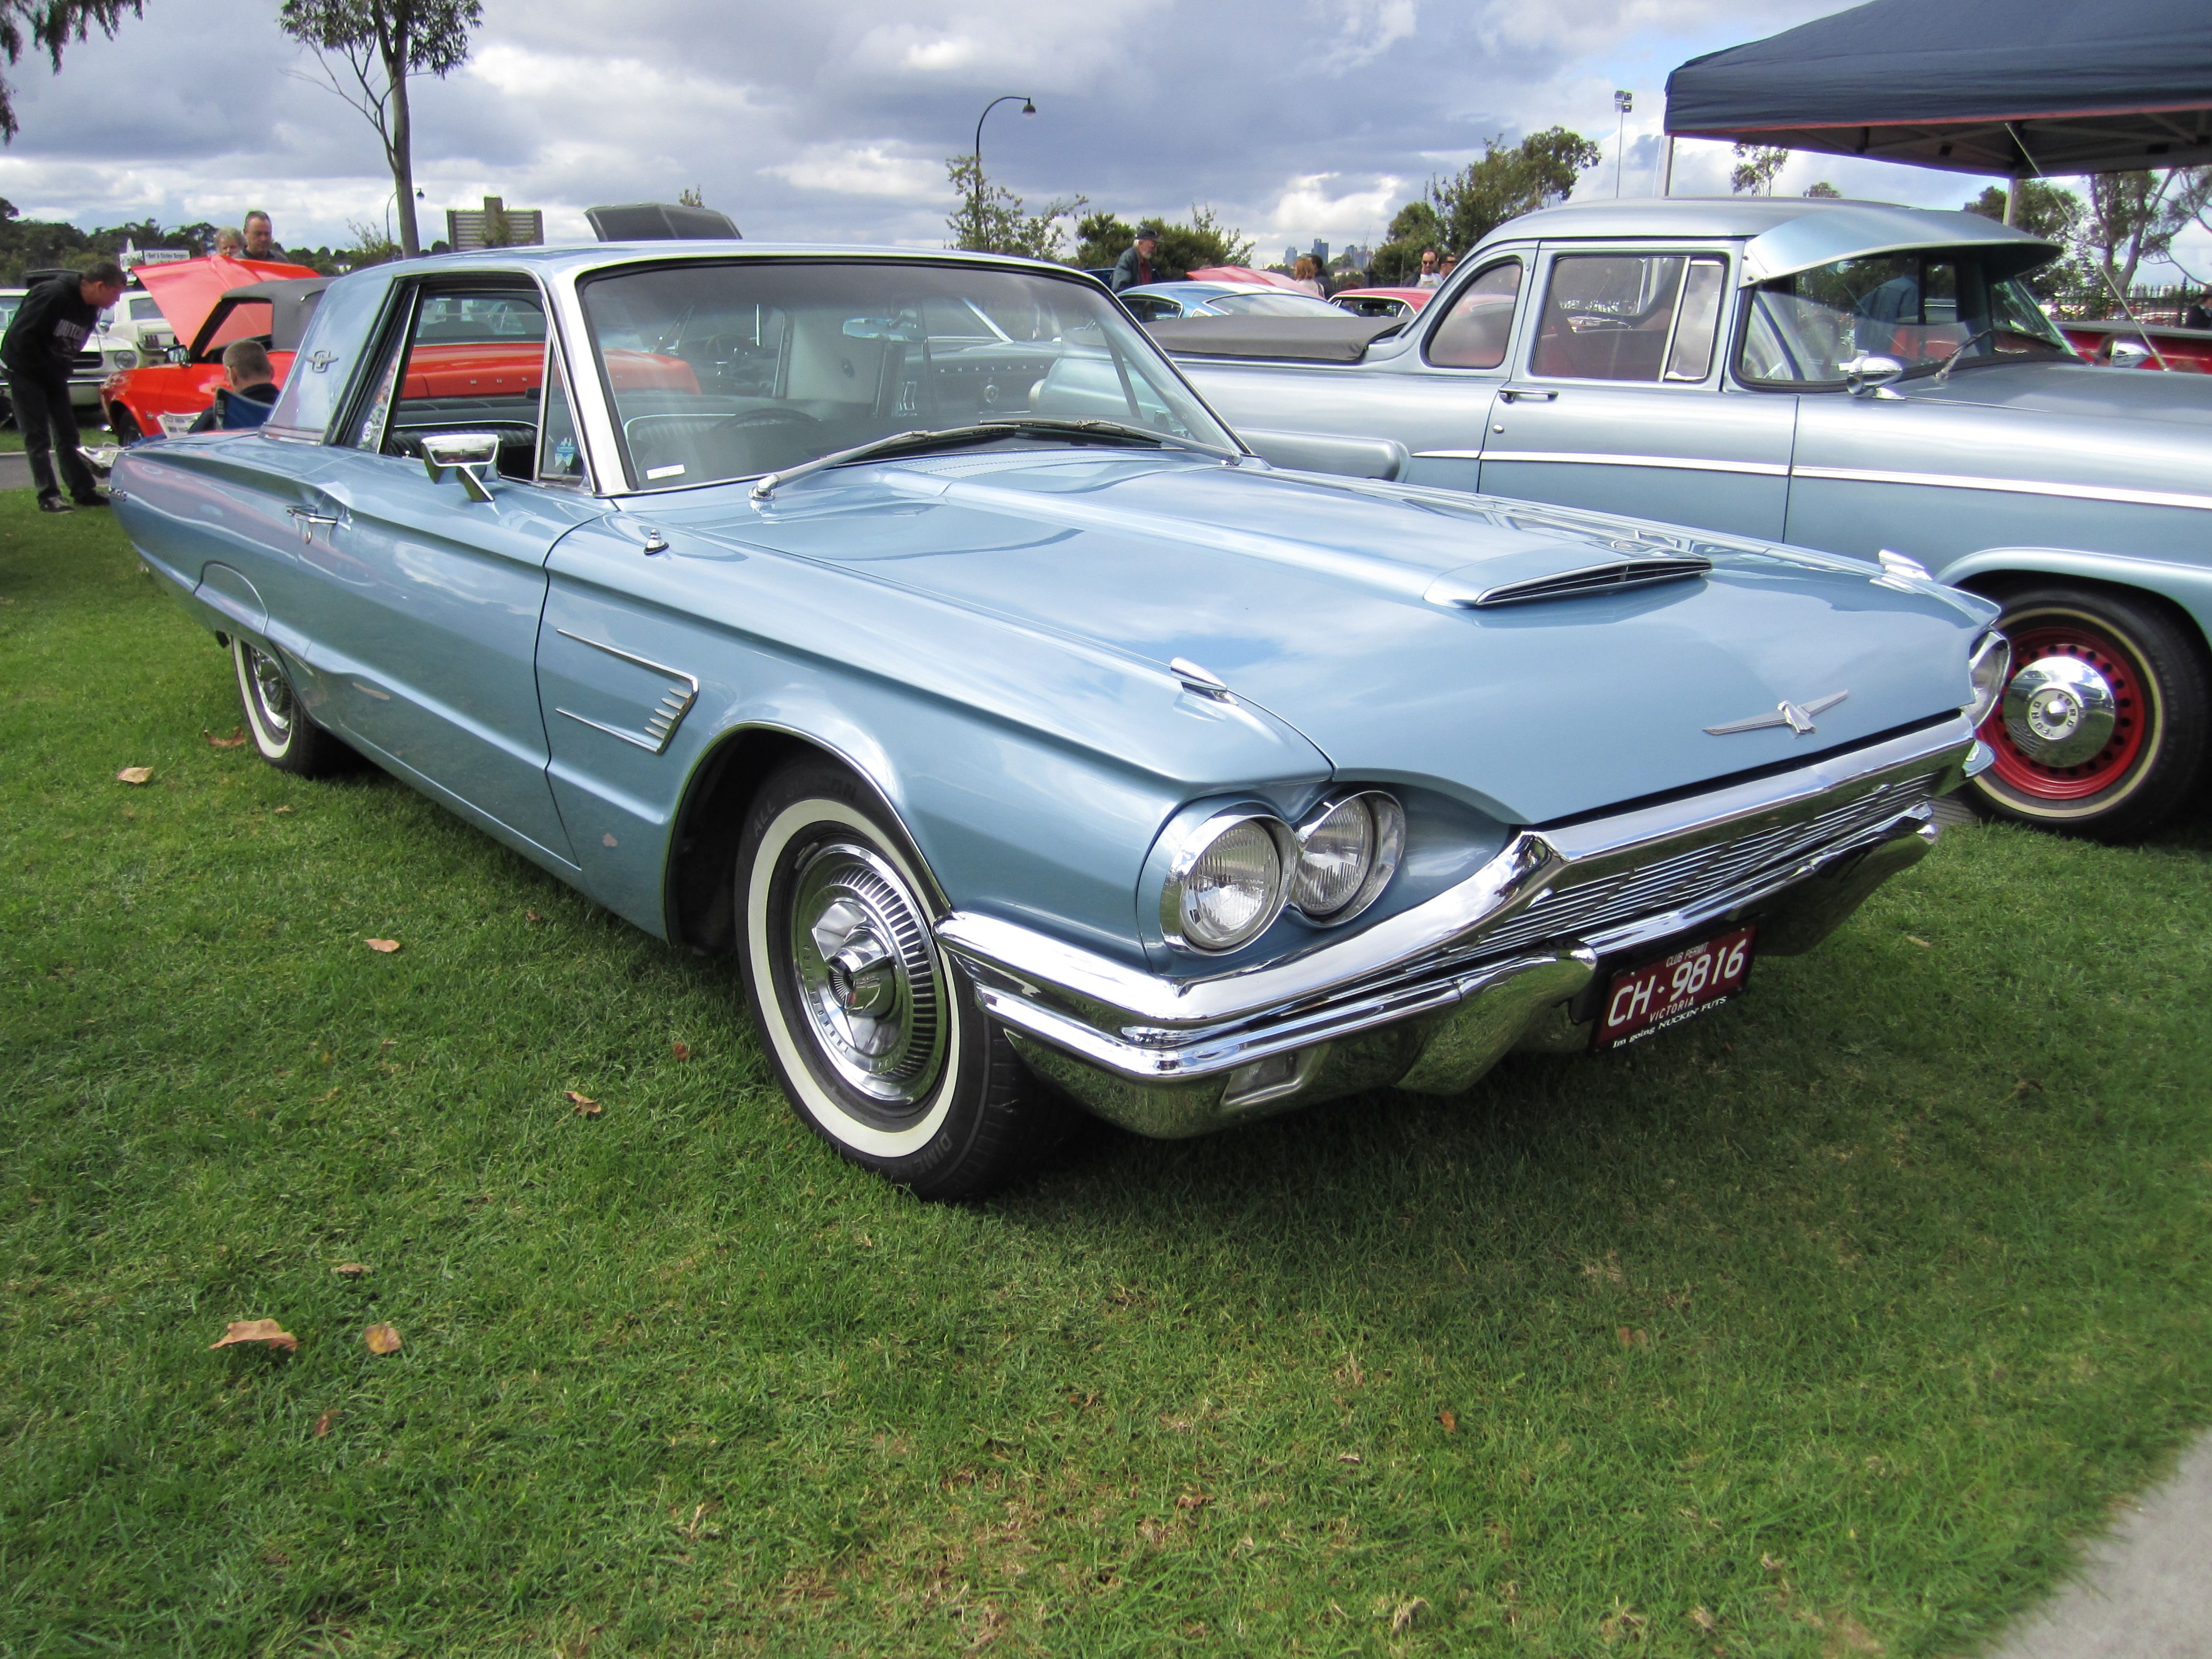 1965 Thunderbird Hardtop Have Seen A Couple Of These On Craigslist